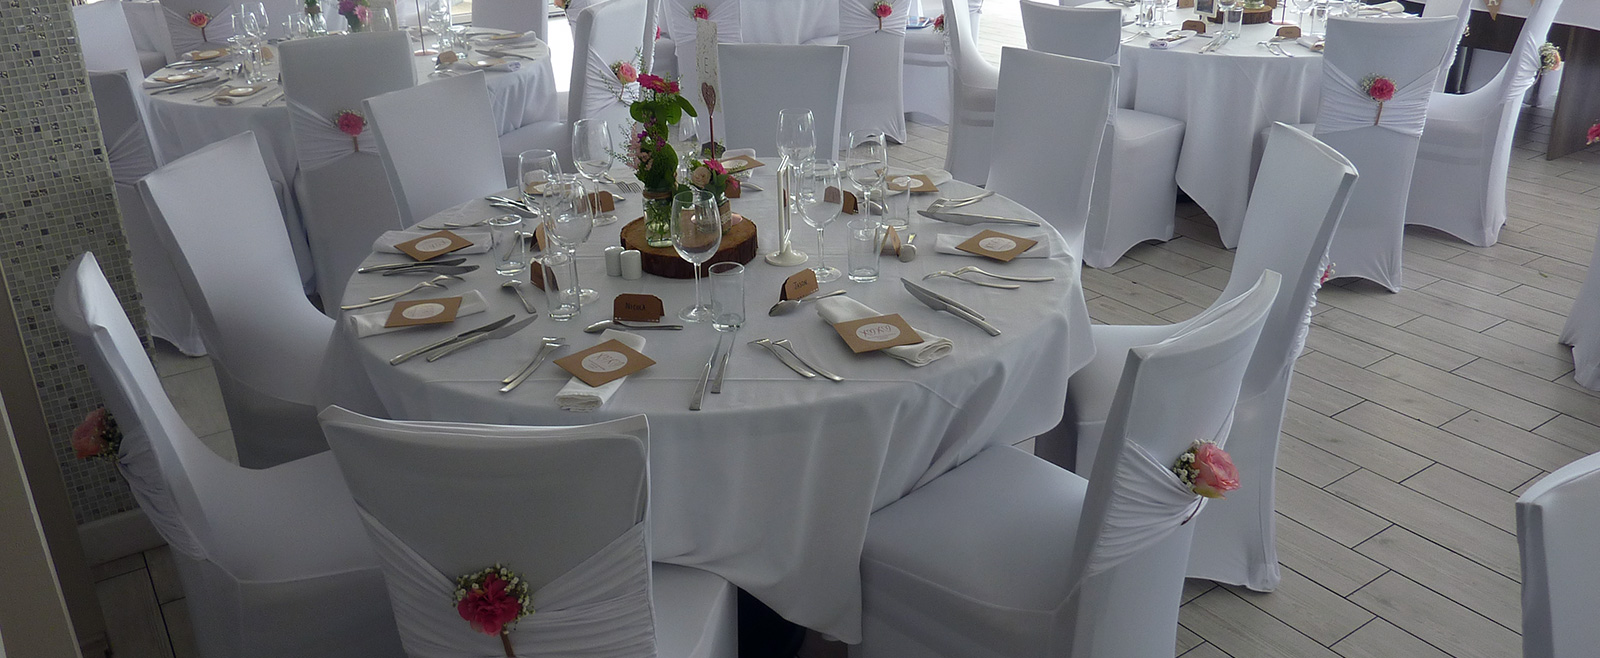 Wedding Styling - Chair Covers